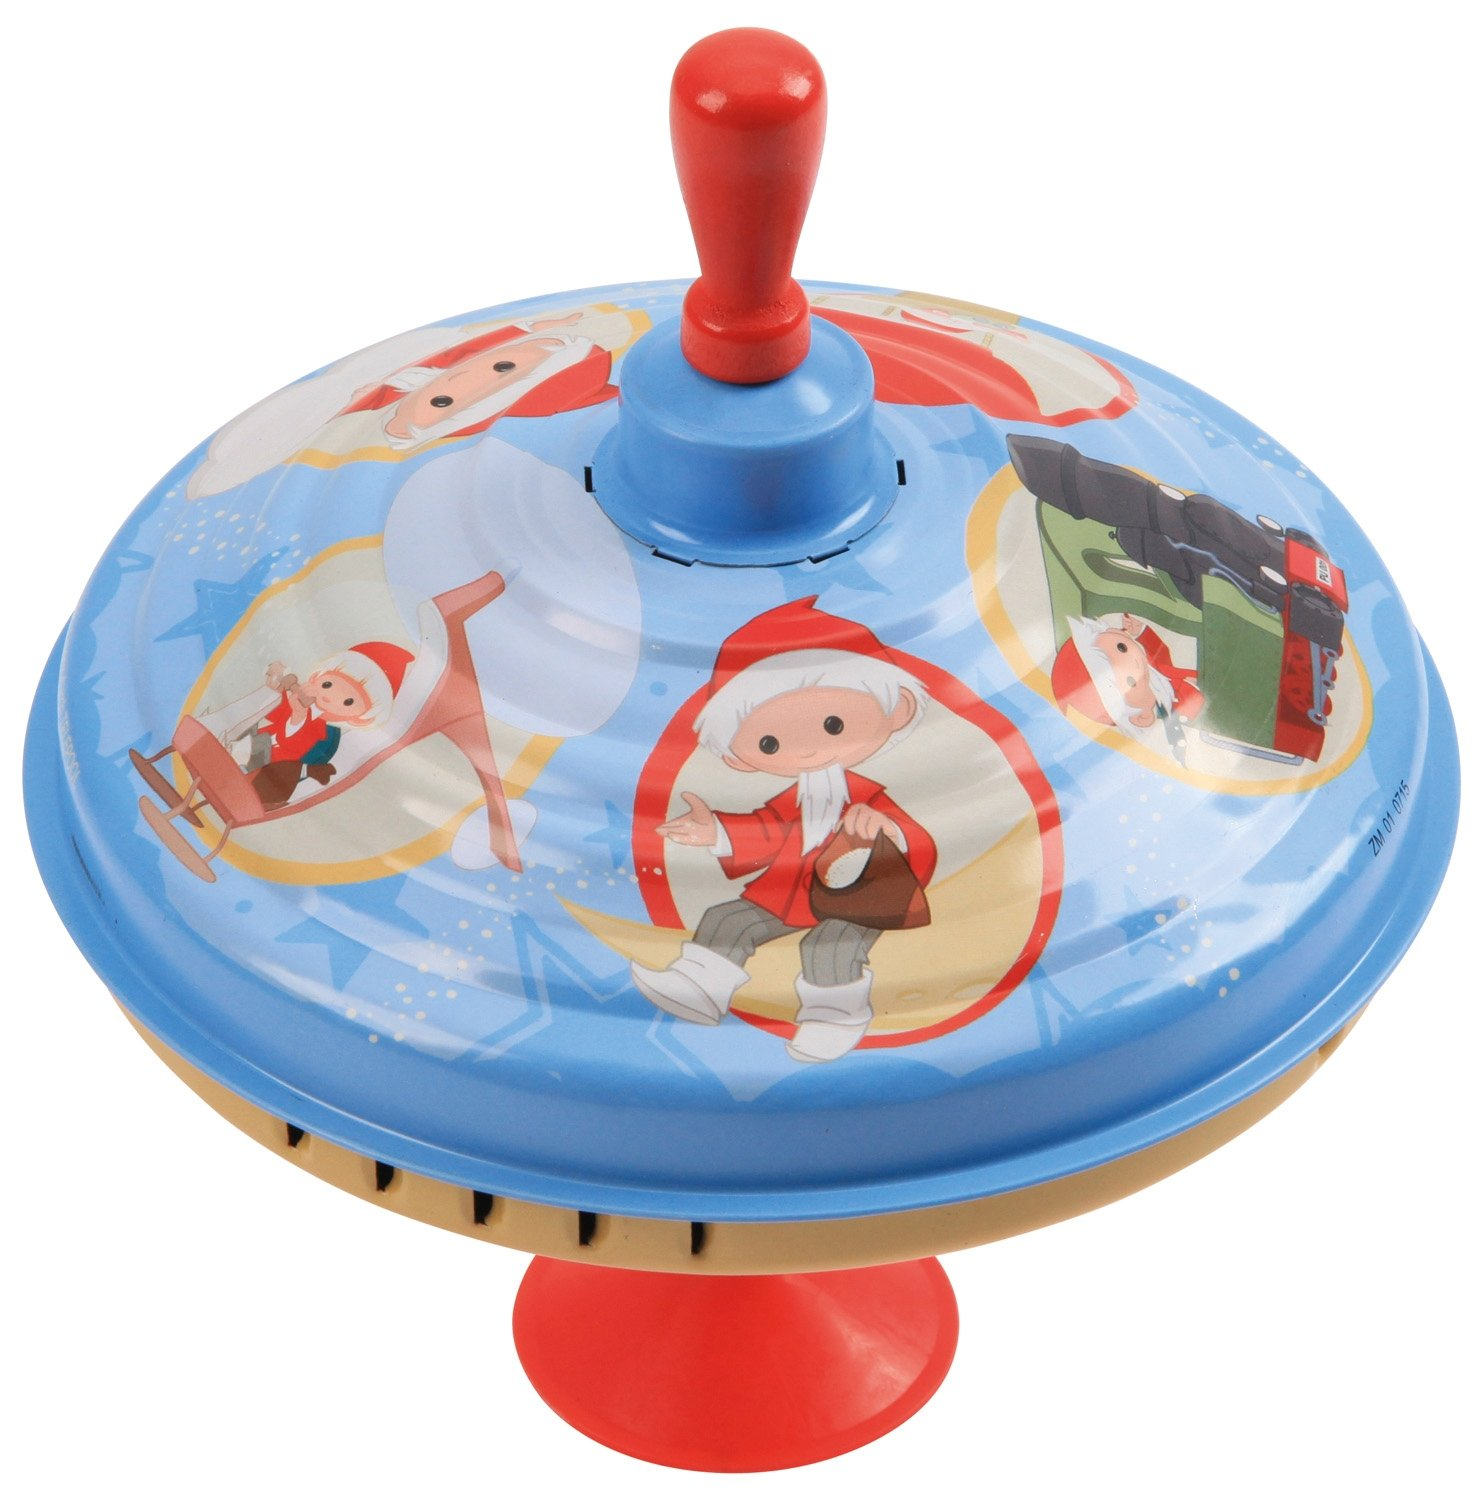 SIMM Spielwaren Bolz 52120 panorama spinning top with sound chip, railway noise